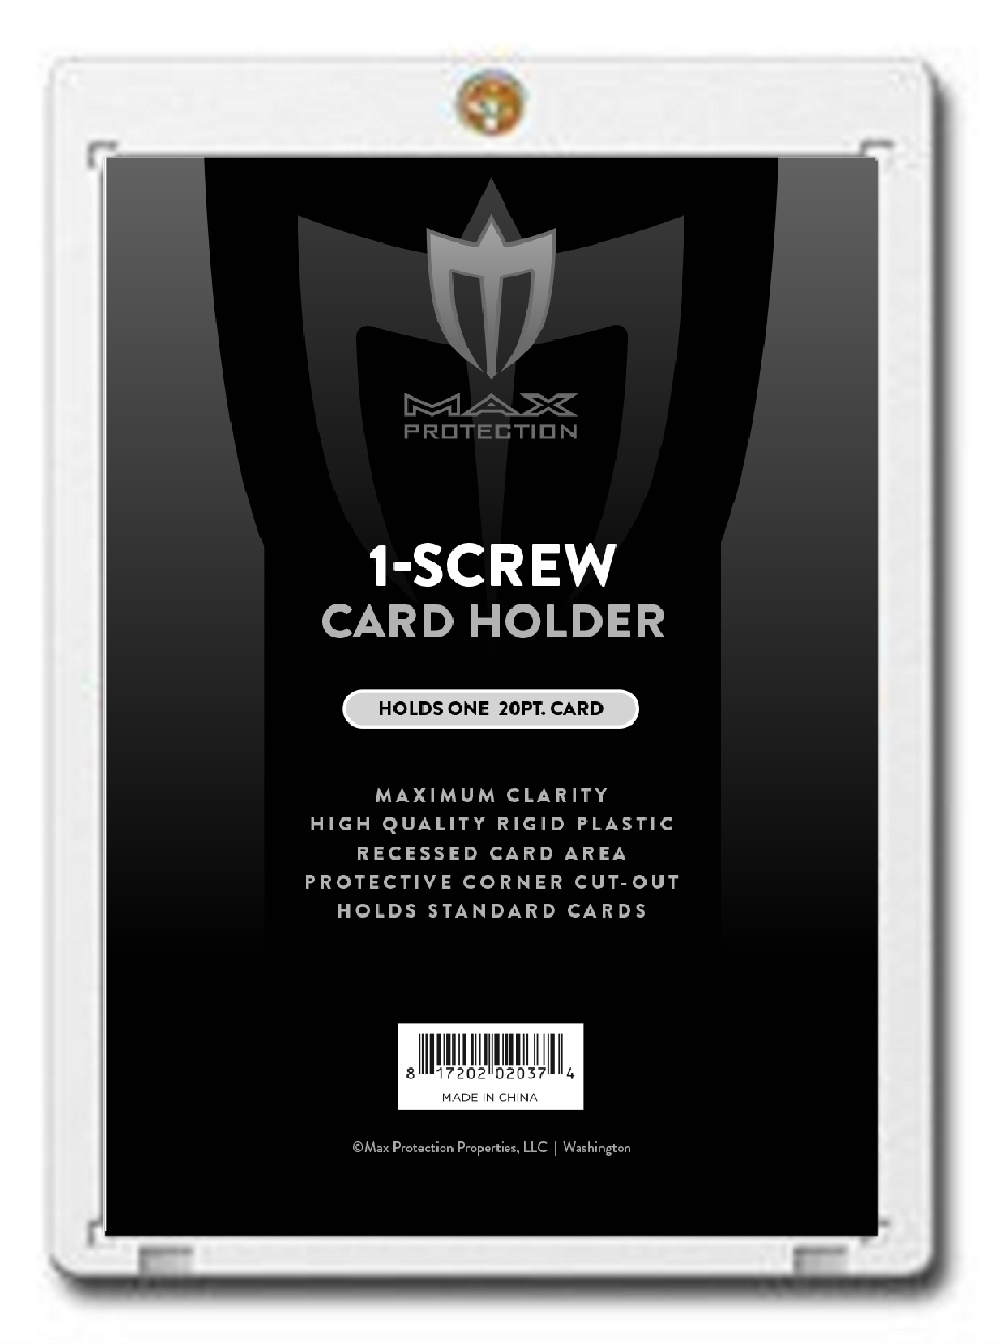 1 Screw Screwdown For Standard 20pt Cards Box Front